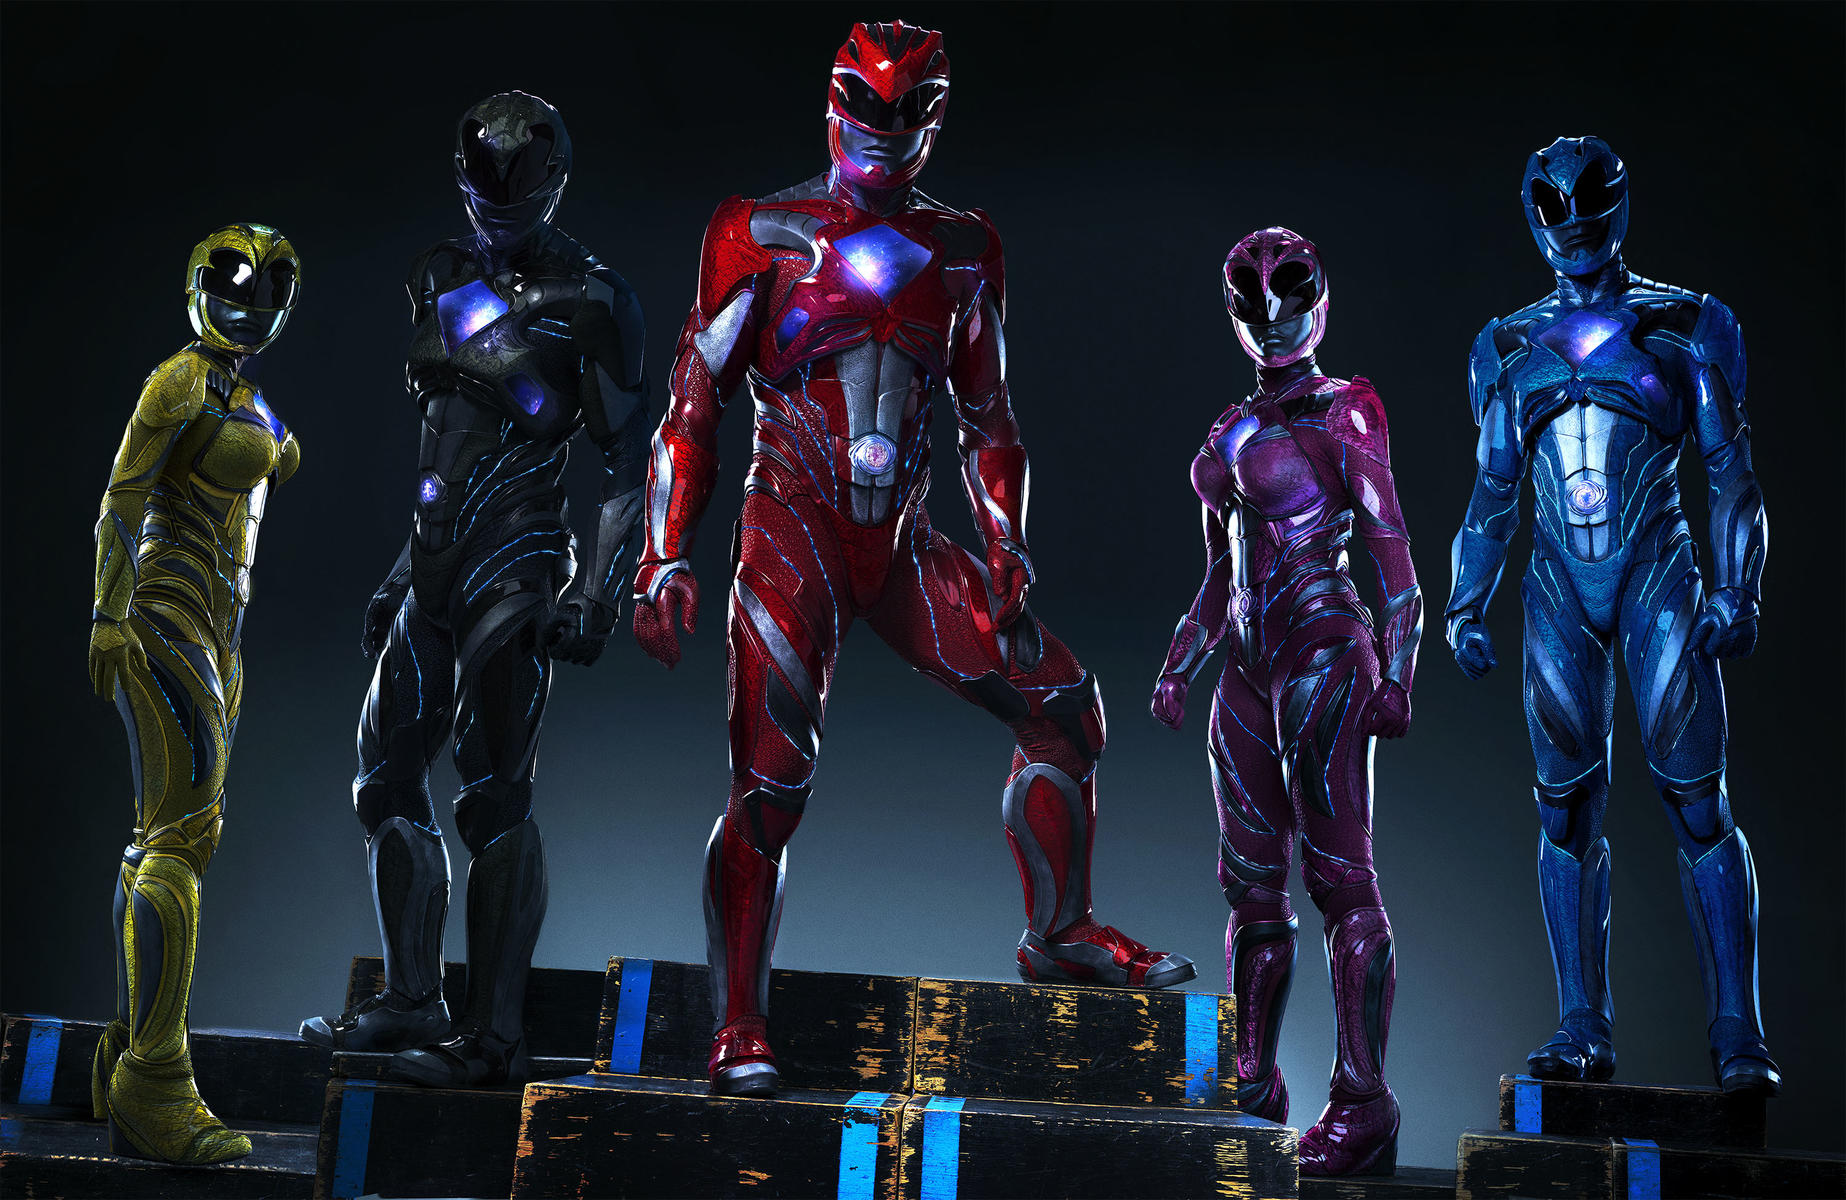 Power Rangers Kritik zum Film Superhelden